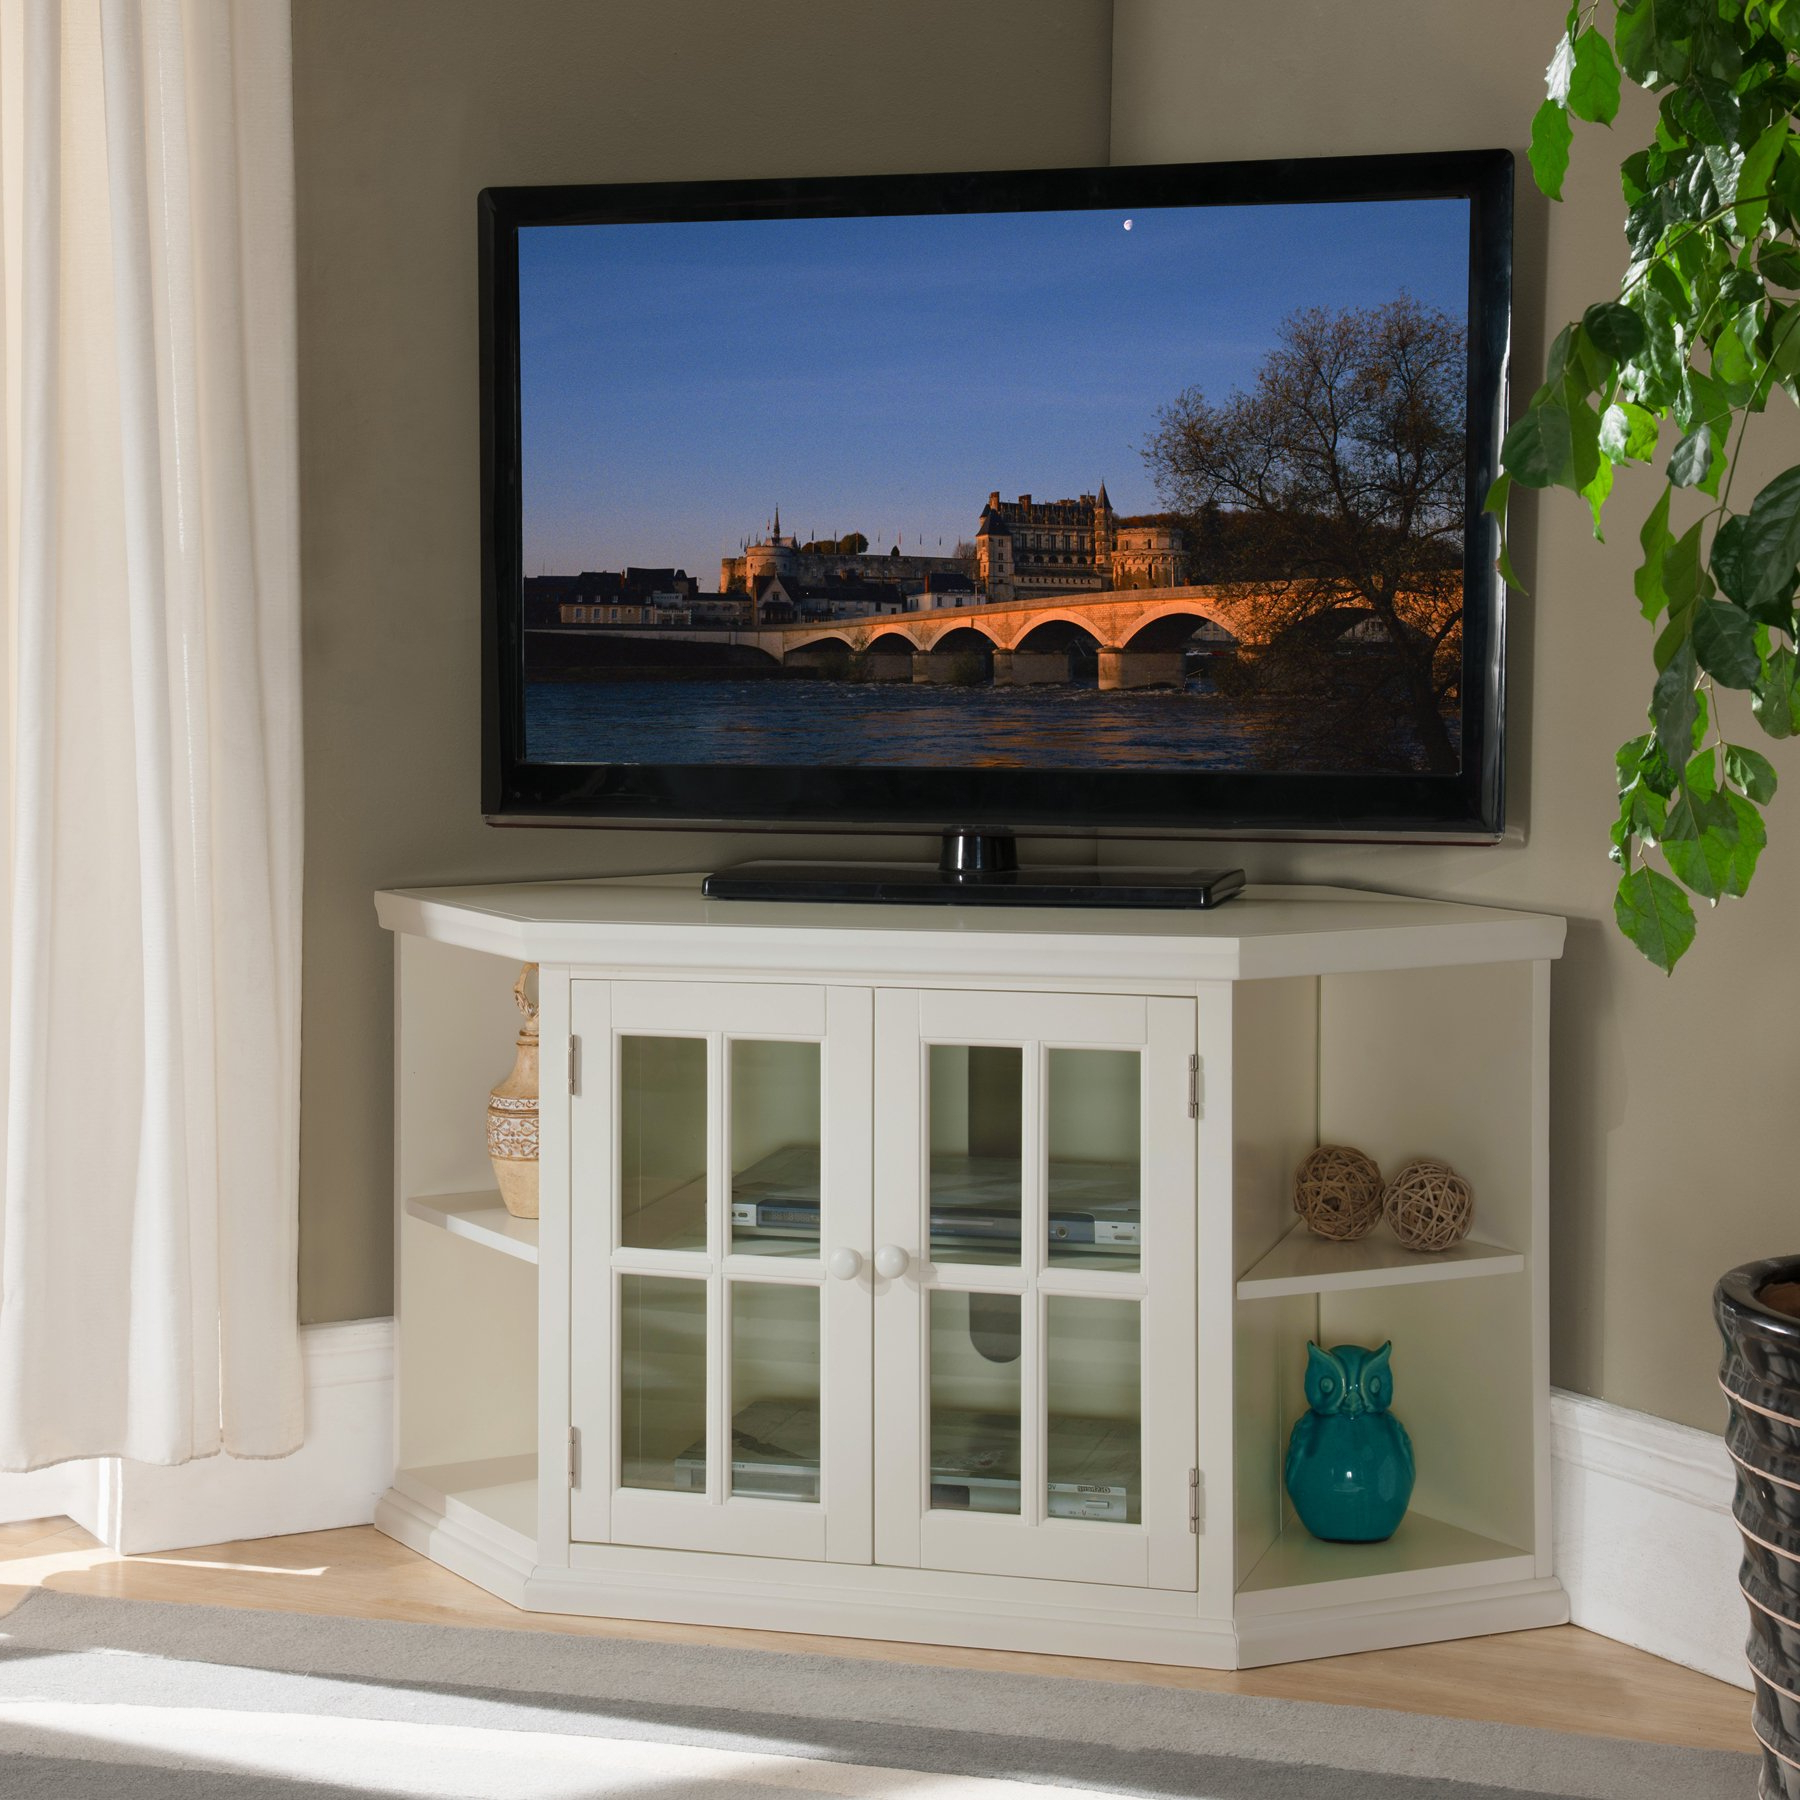 Widely Used Shop White 46 Inch Corner Tv Stand With Bookcases – Free Shipping On Within Tv Stands With Bookcases (View 20 of 20)